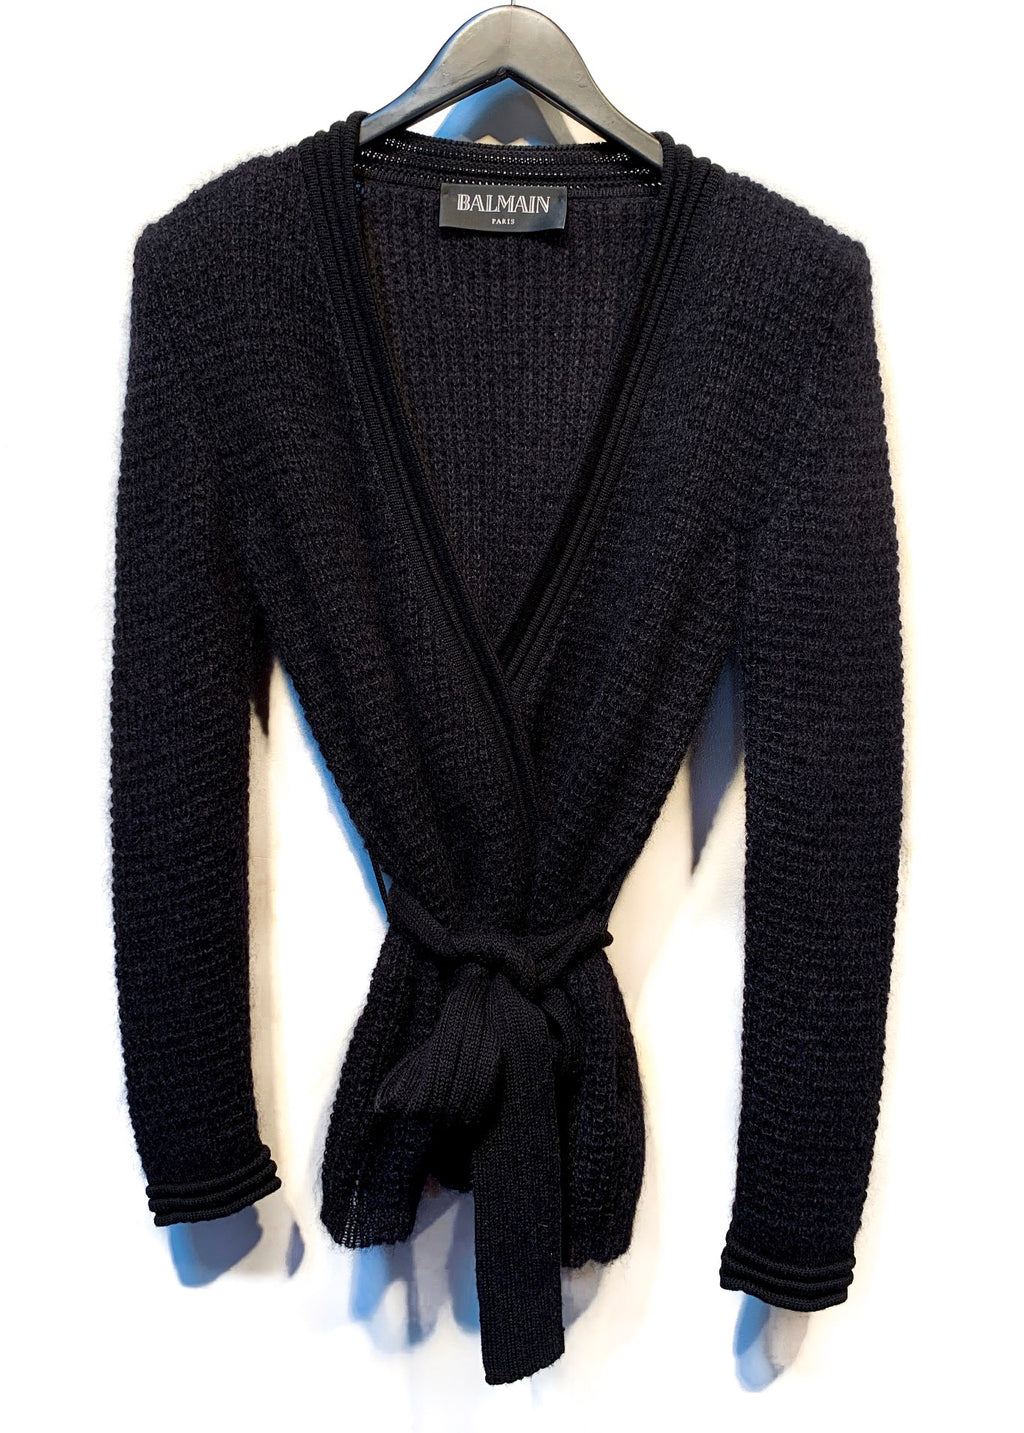 Balmain Black Mohair Blend Wrap Belted Cardigan